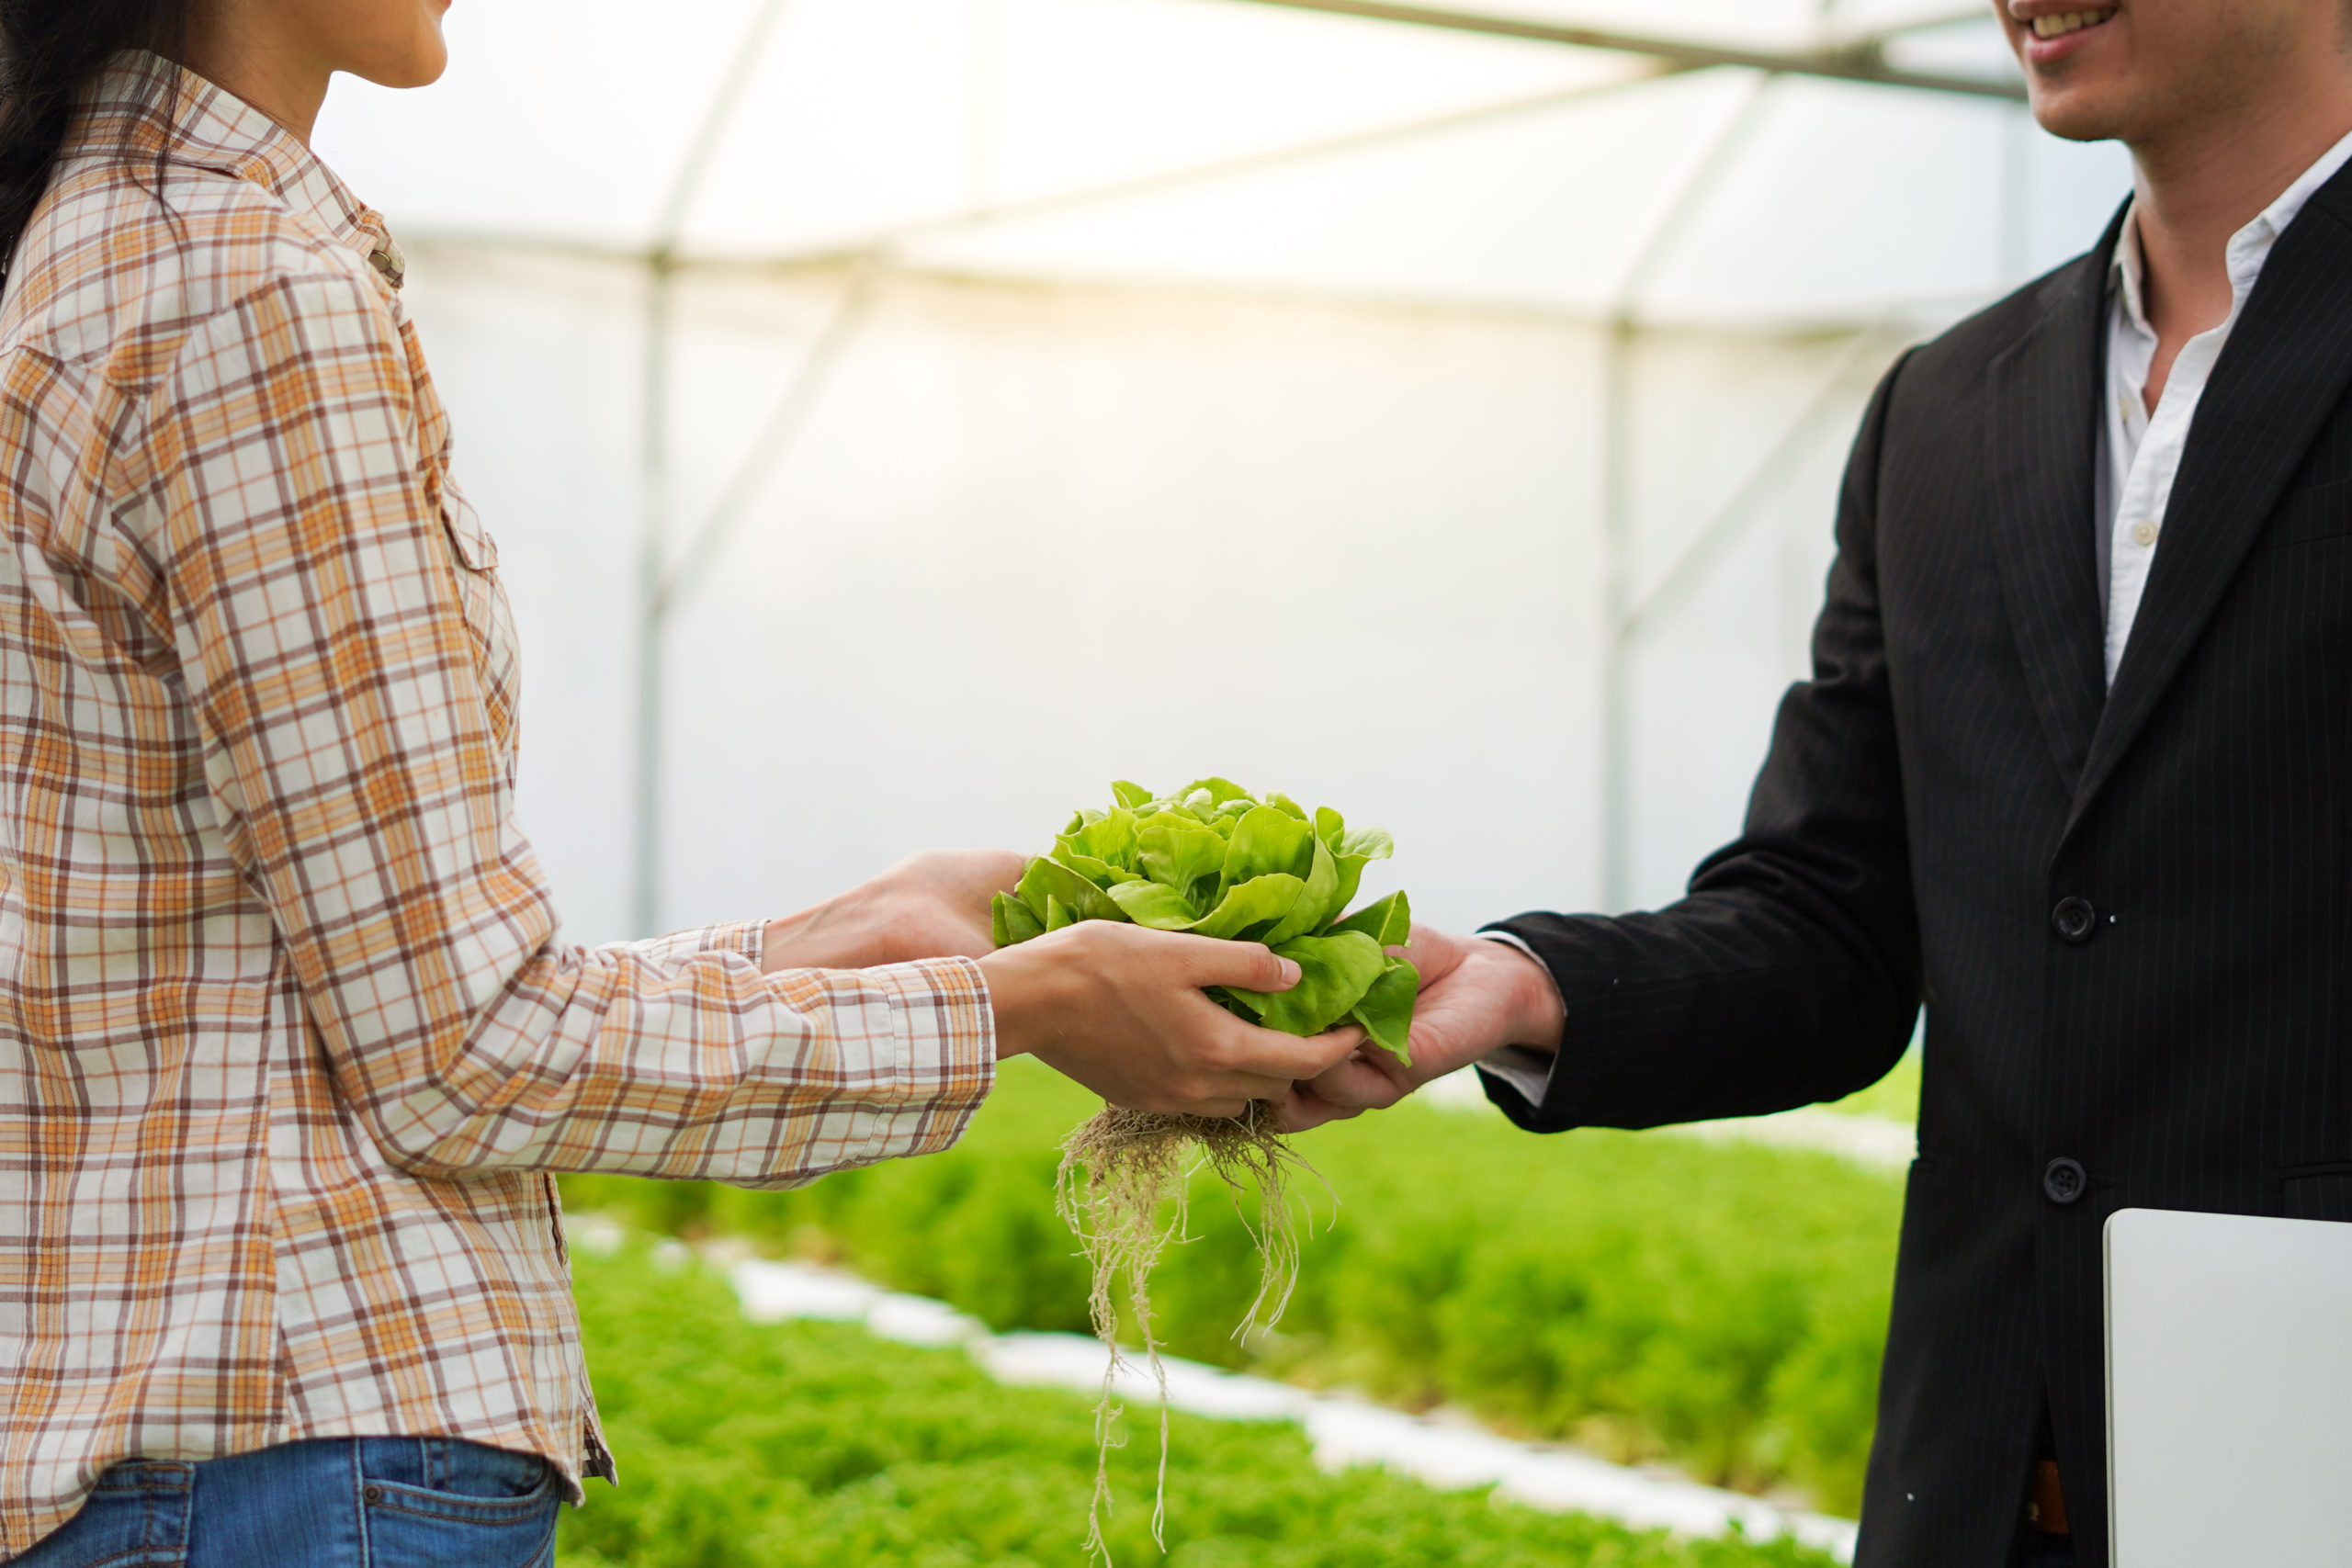 farmer-deal-and-agree-with-businessman-to-supply-and-sell-farm-products